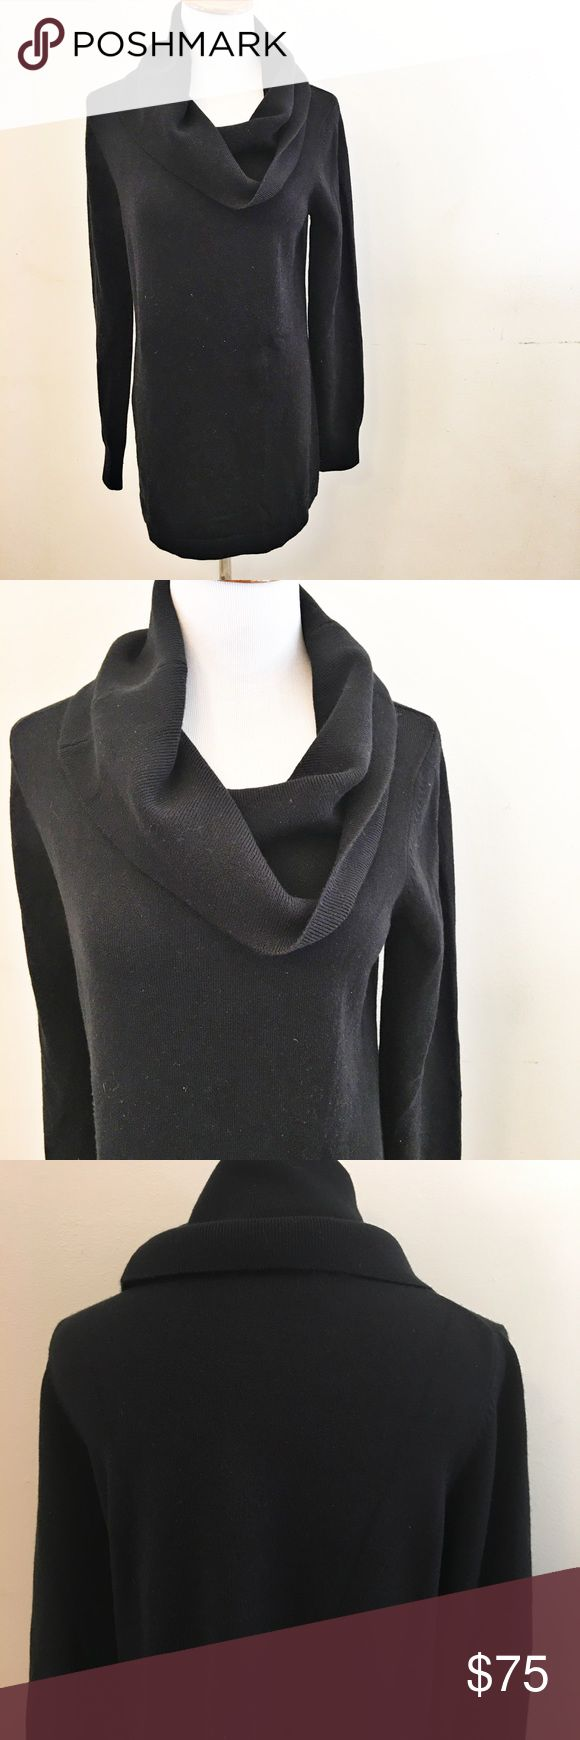 "French Connection Black Turtle Neck Tunic My daughter cut out the fabric tag and I don't remember what this fabric content is, but dang this is so soft. It feels like minky, if you've ever felt that stuff! This is a large cowl neck/turtle neck Tunic that looks seriously awesome with black leggings and boots. This is roughly 40"" around at bust, unstretched and 30"" from shoulder to bottom hem. French Connection Sweaters"